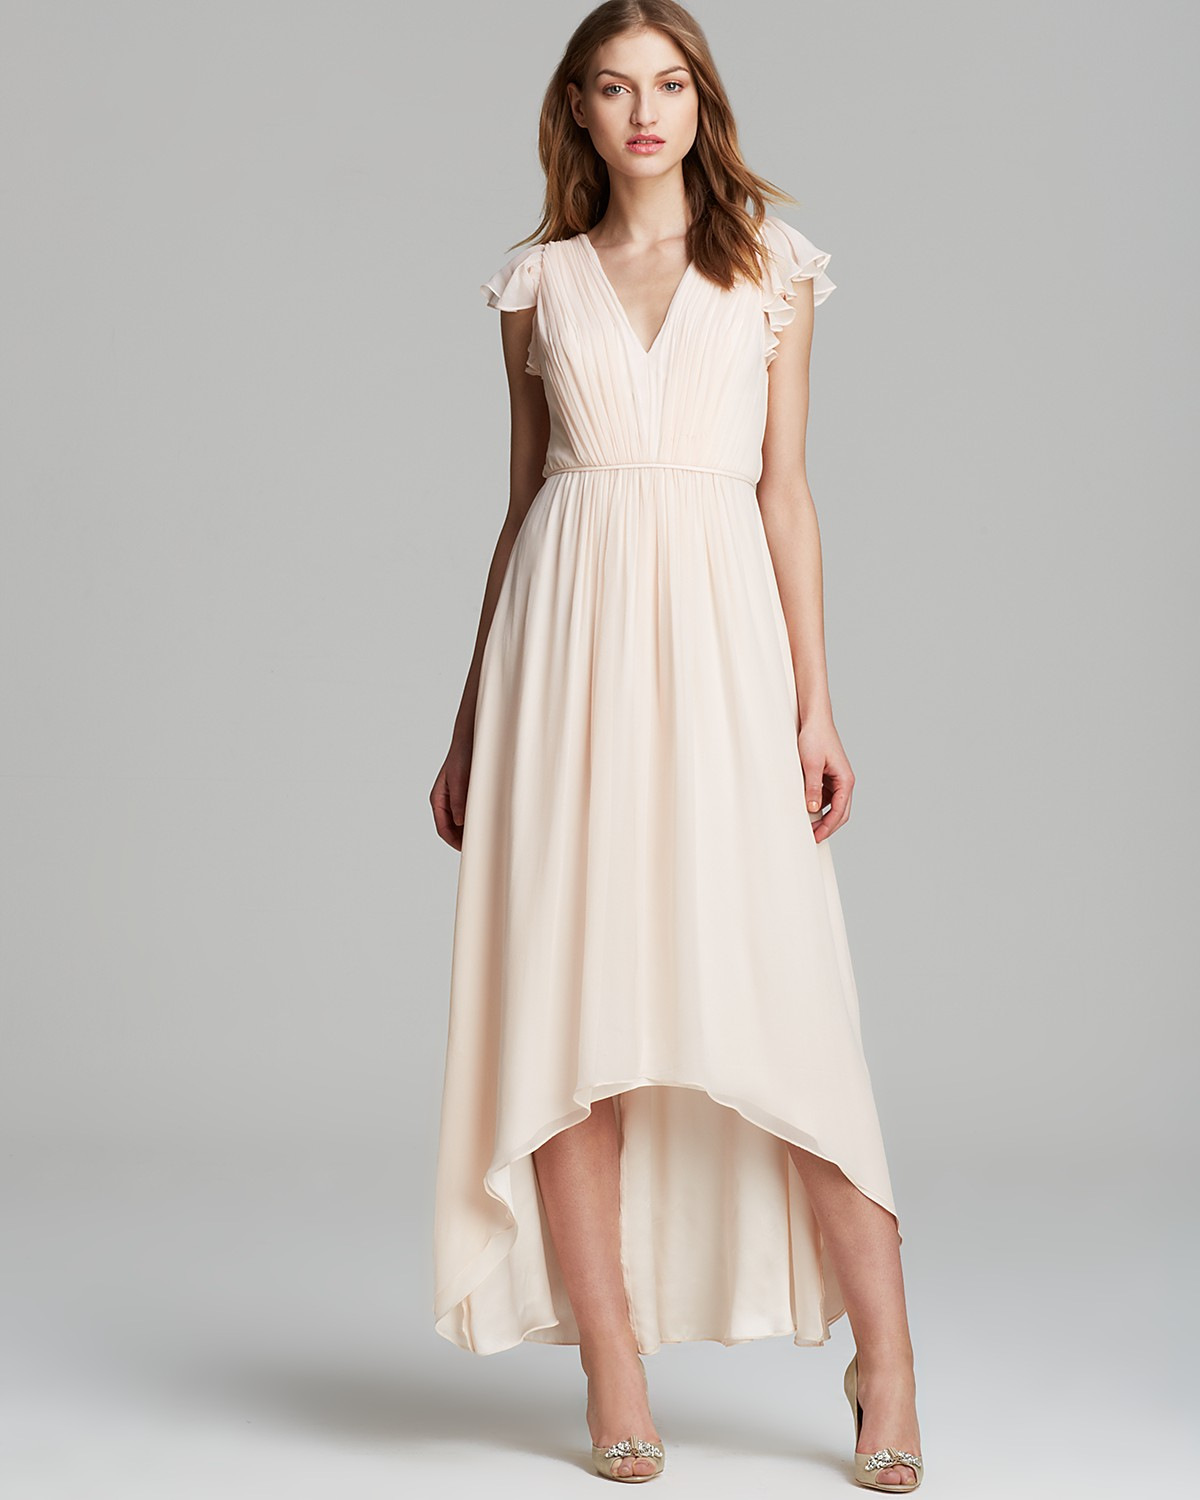 Jill Stuart Dress V Neck Ruffle Sleeve Chiffon With High Low Hem